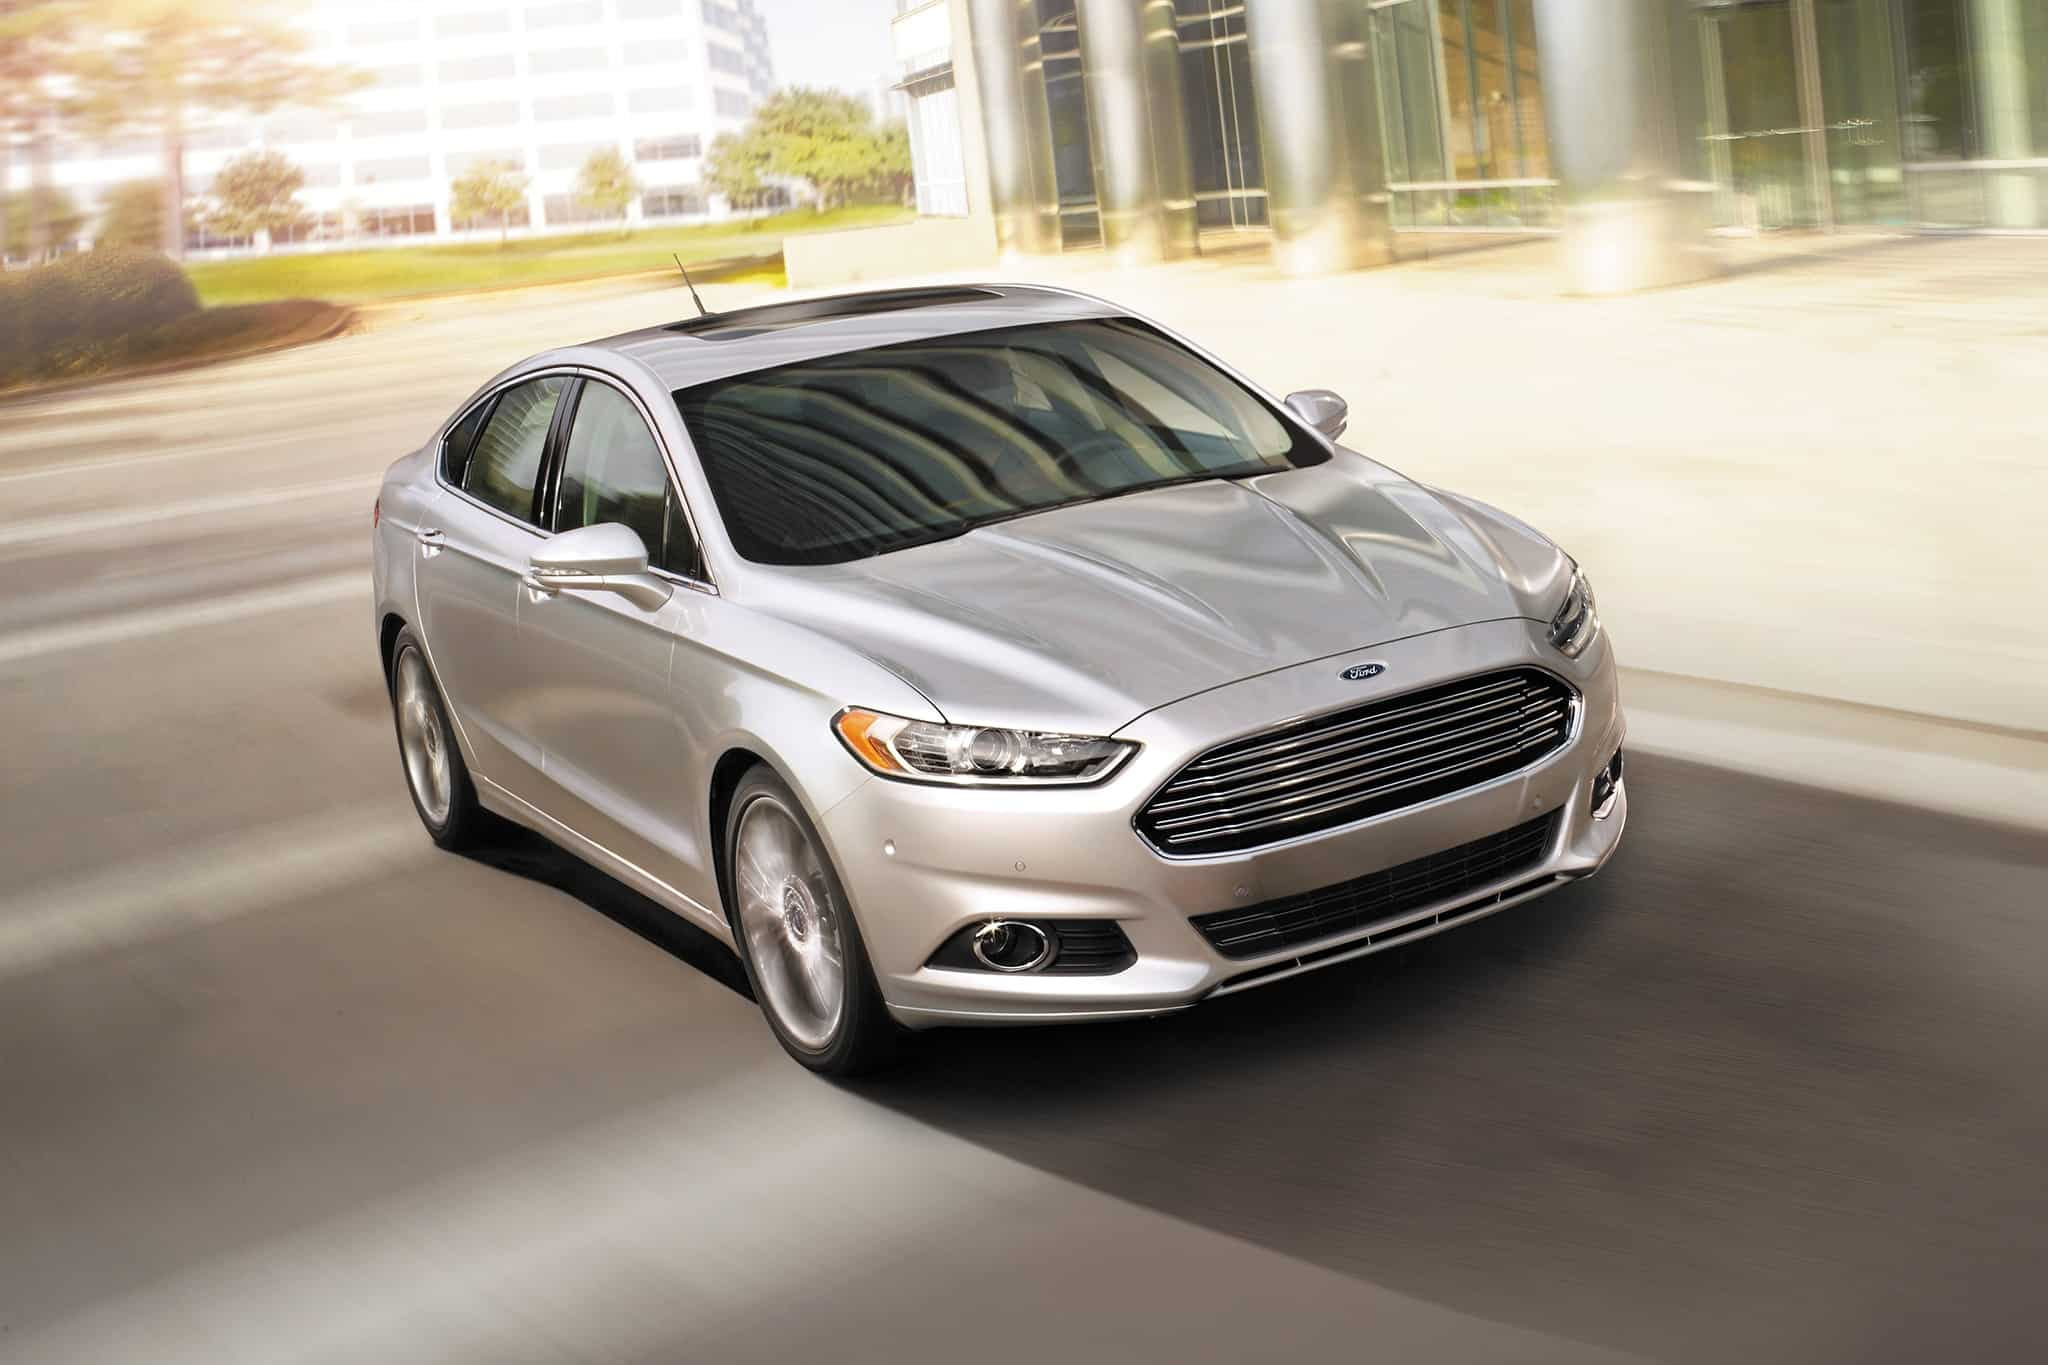 Ford Fusion – used car